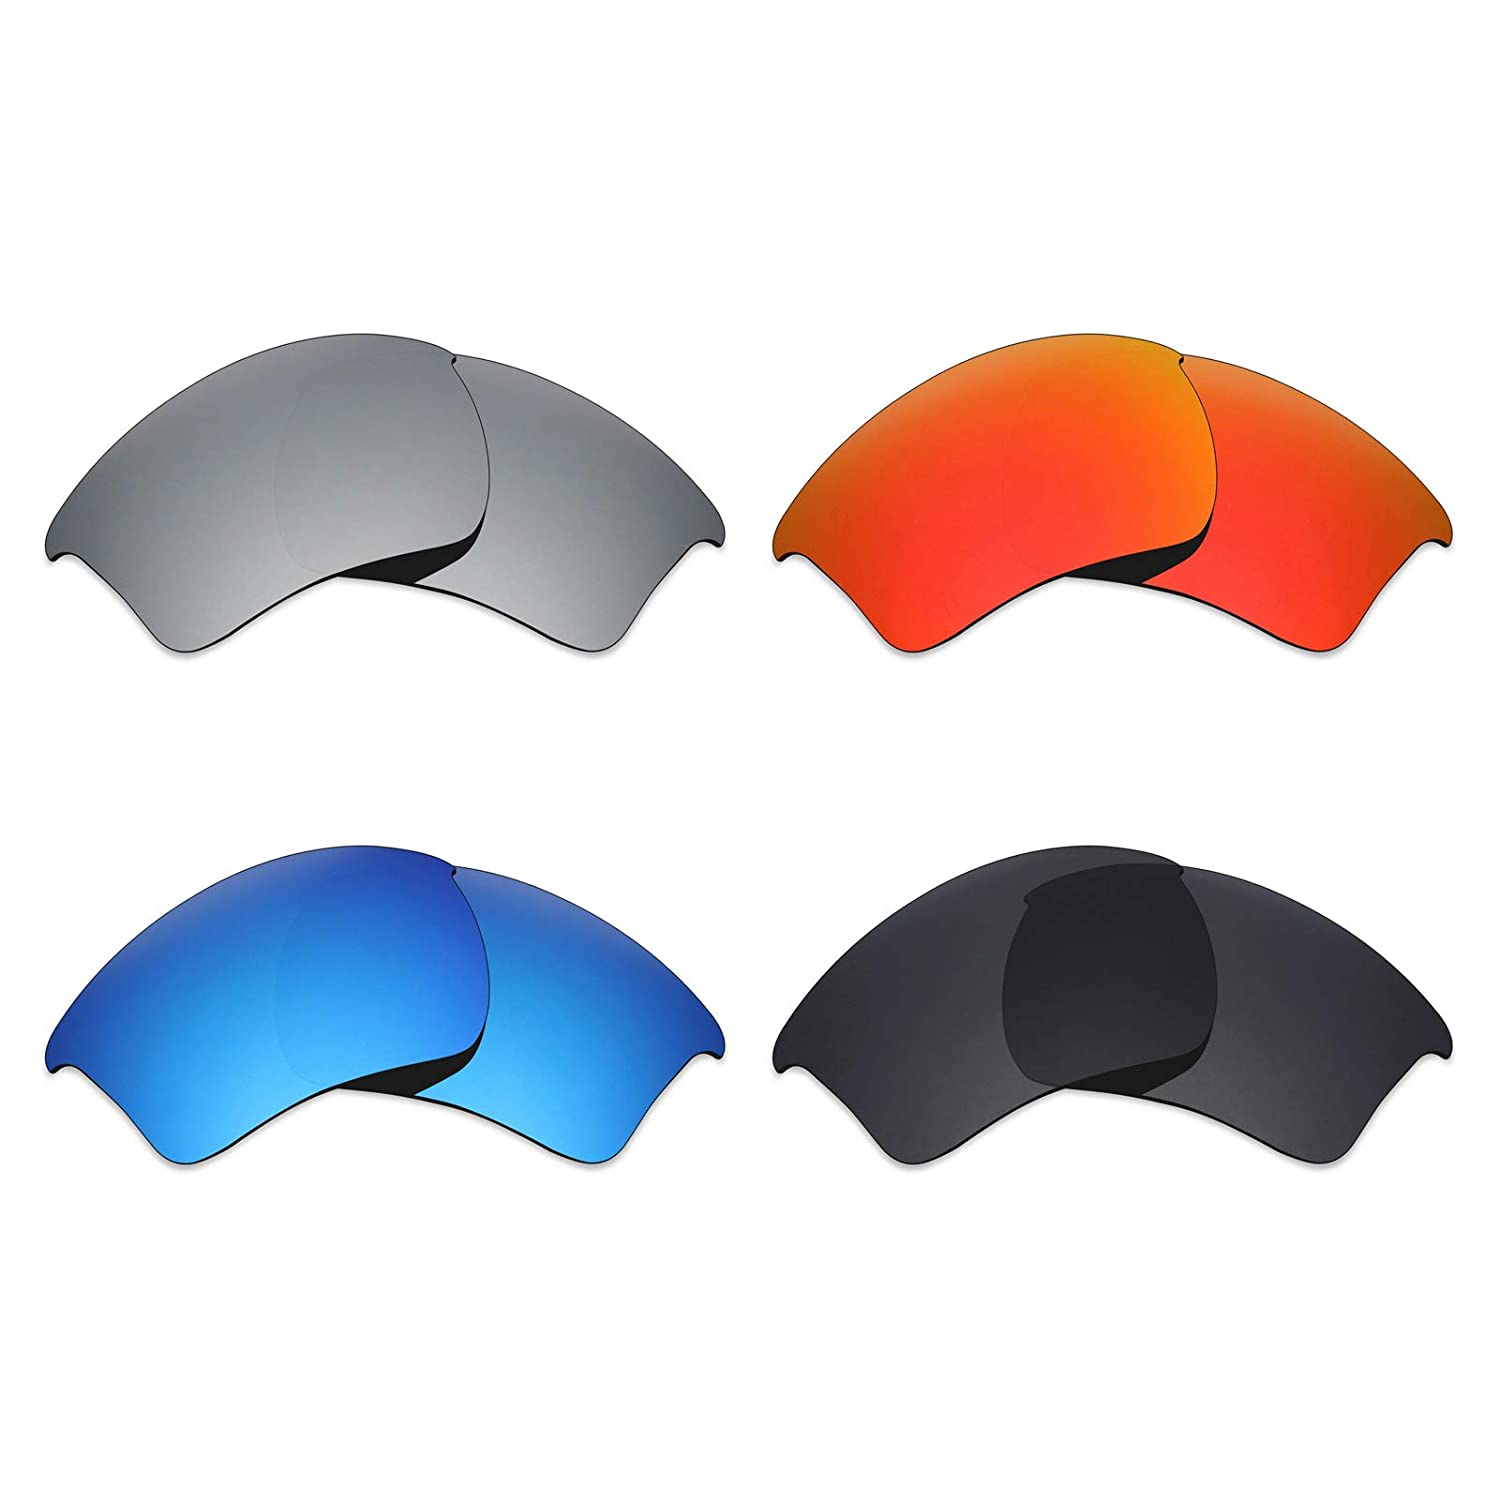 3eae71905bcb7 Mryok 4 Pair Polarized Replacement Lenses for Oakley Half Jacket 2.0 XL  Sunglass - Stealth ...